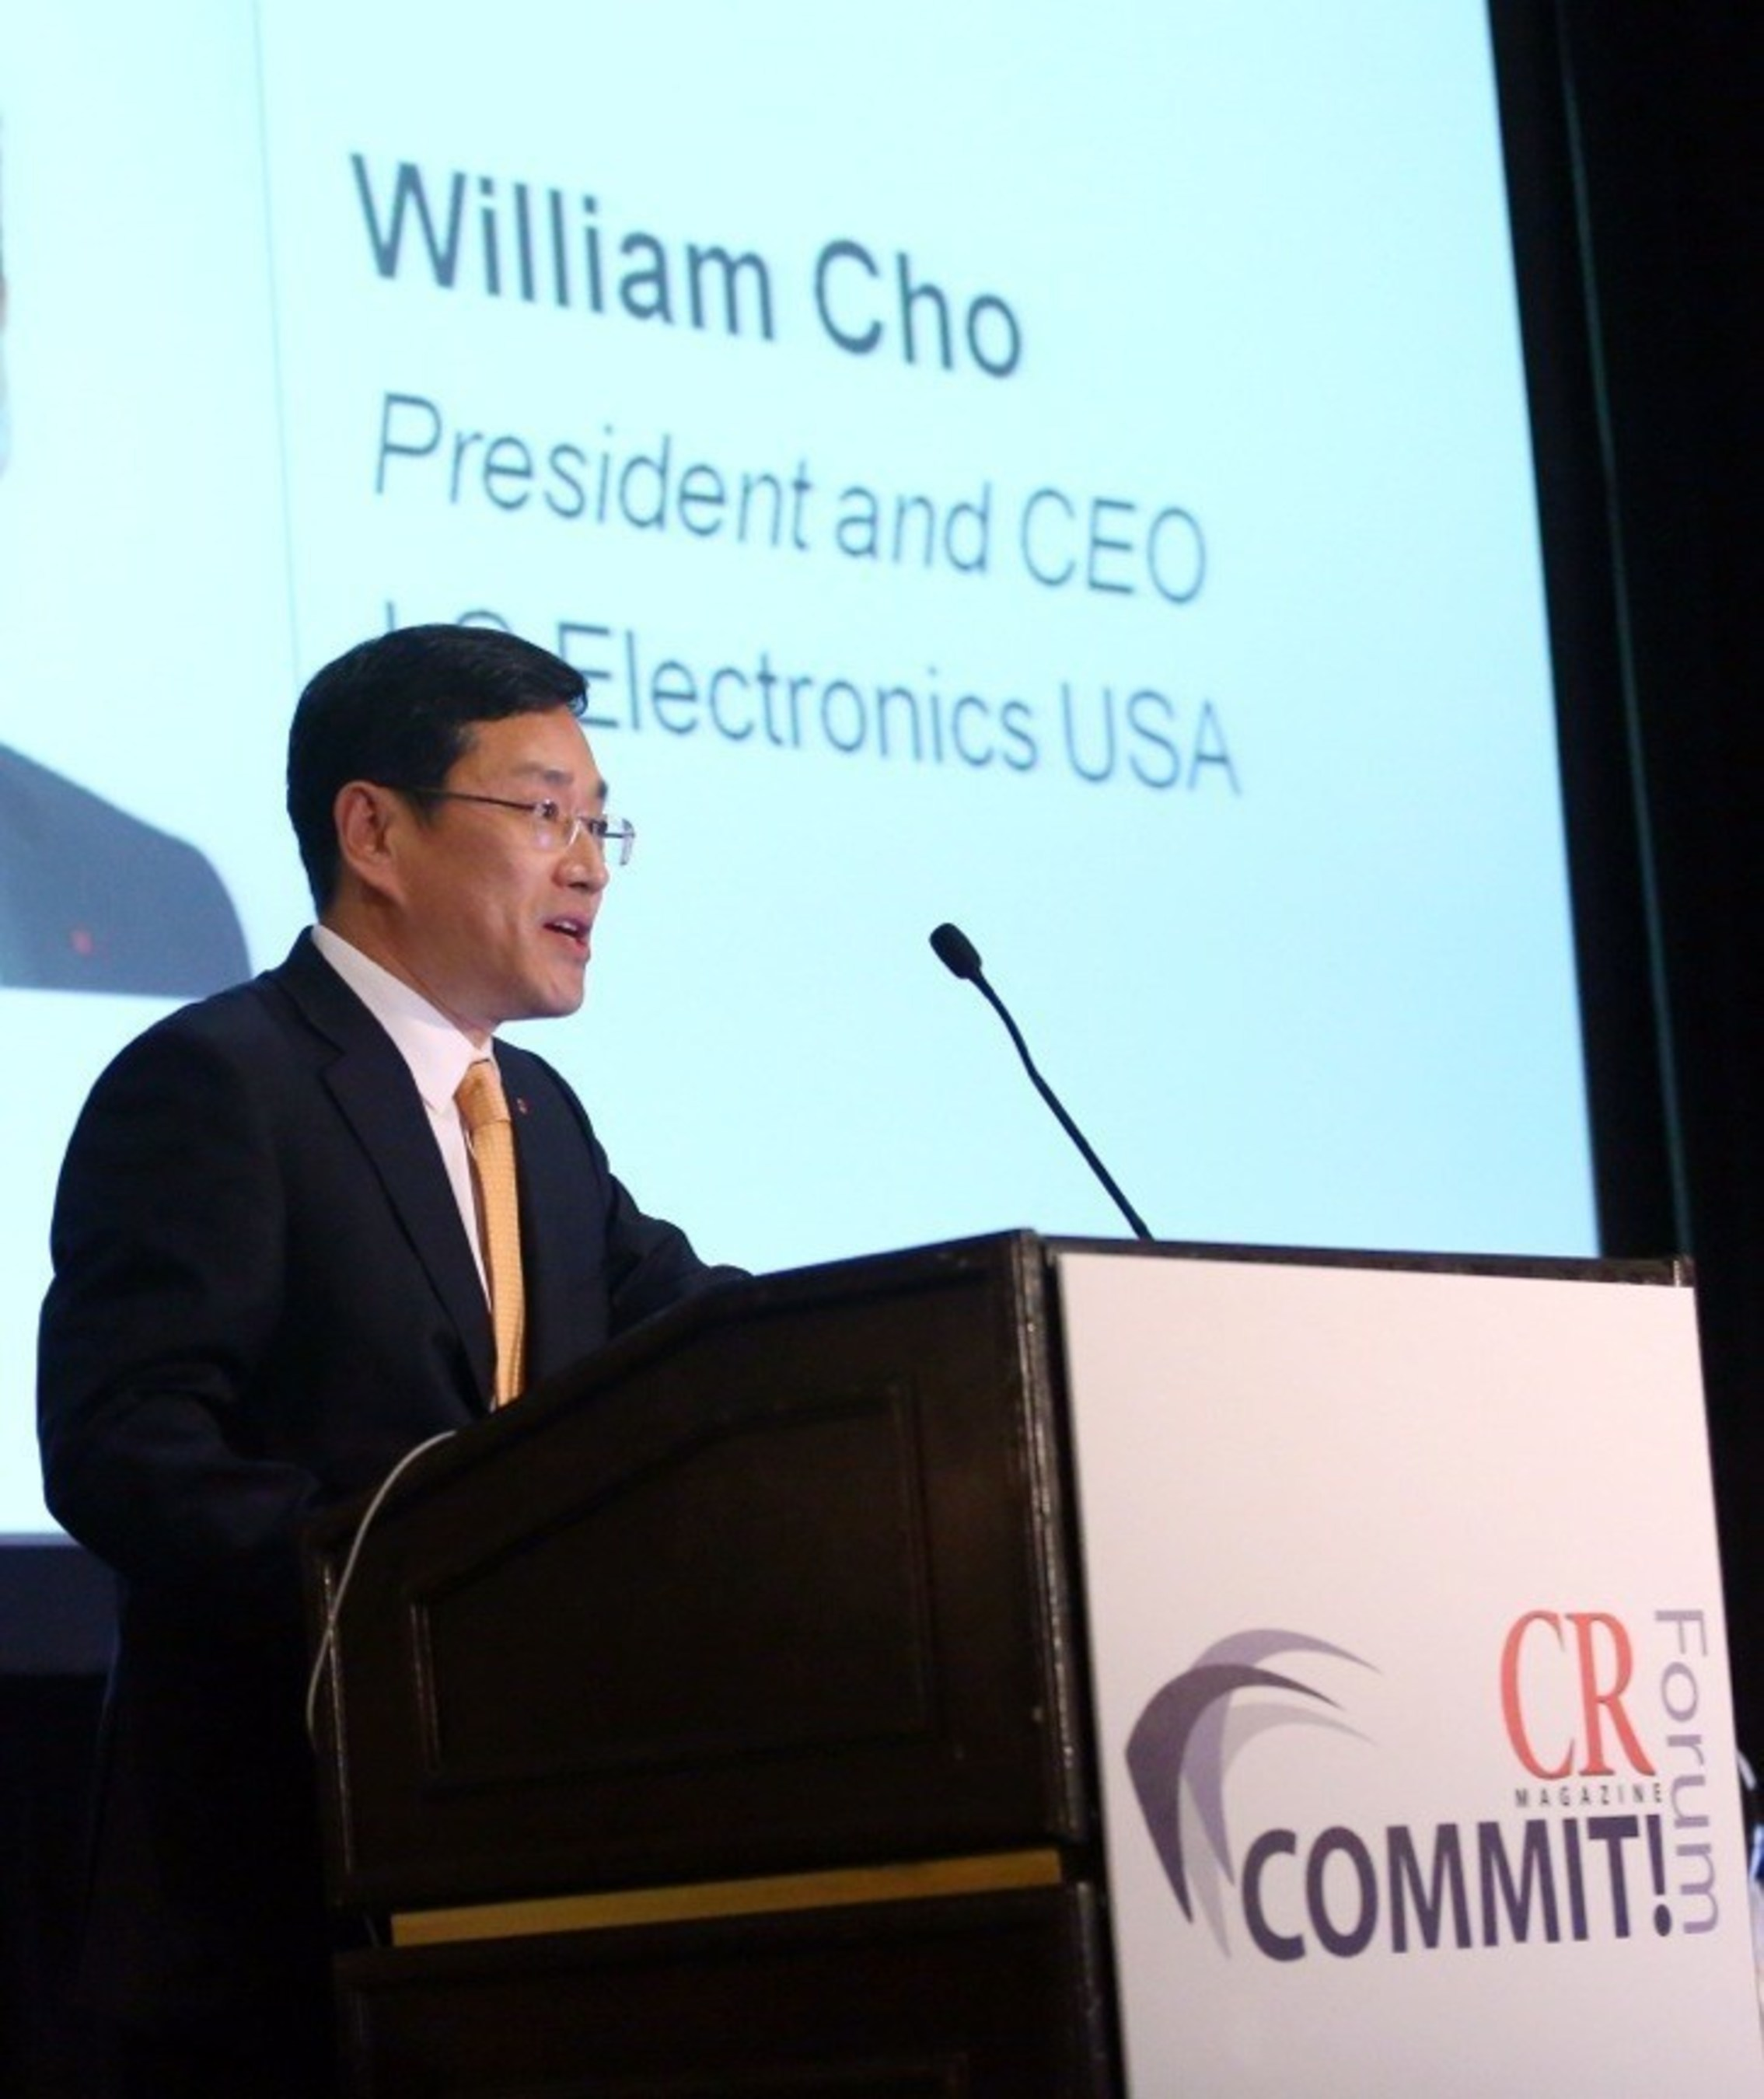 LG Electronics USA CEO William Cho, accepts the CEO of the Year Award, recognizing LG's environmental sustainability leadership, at the Responsible CEO of the Year Award ceremony in New York, N.Y.,Thursday, October 22, 2015. (Stuart Ramson/AP Images for LG Electronics USA)